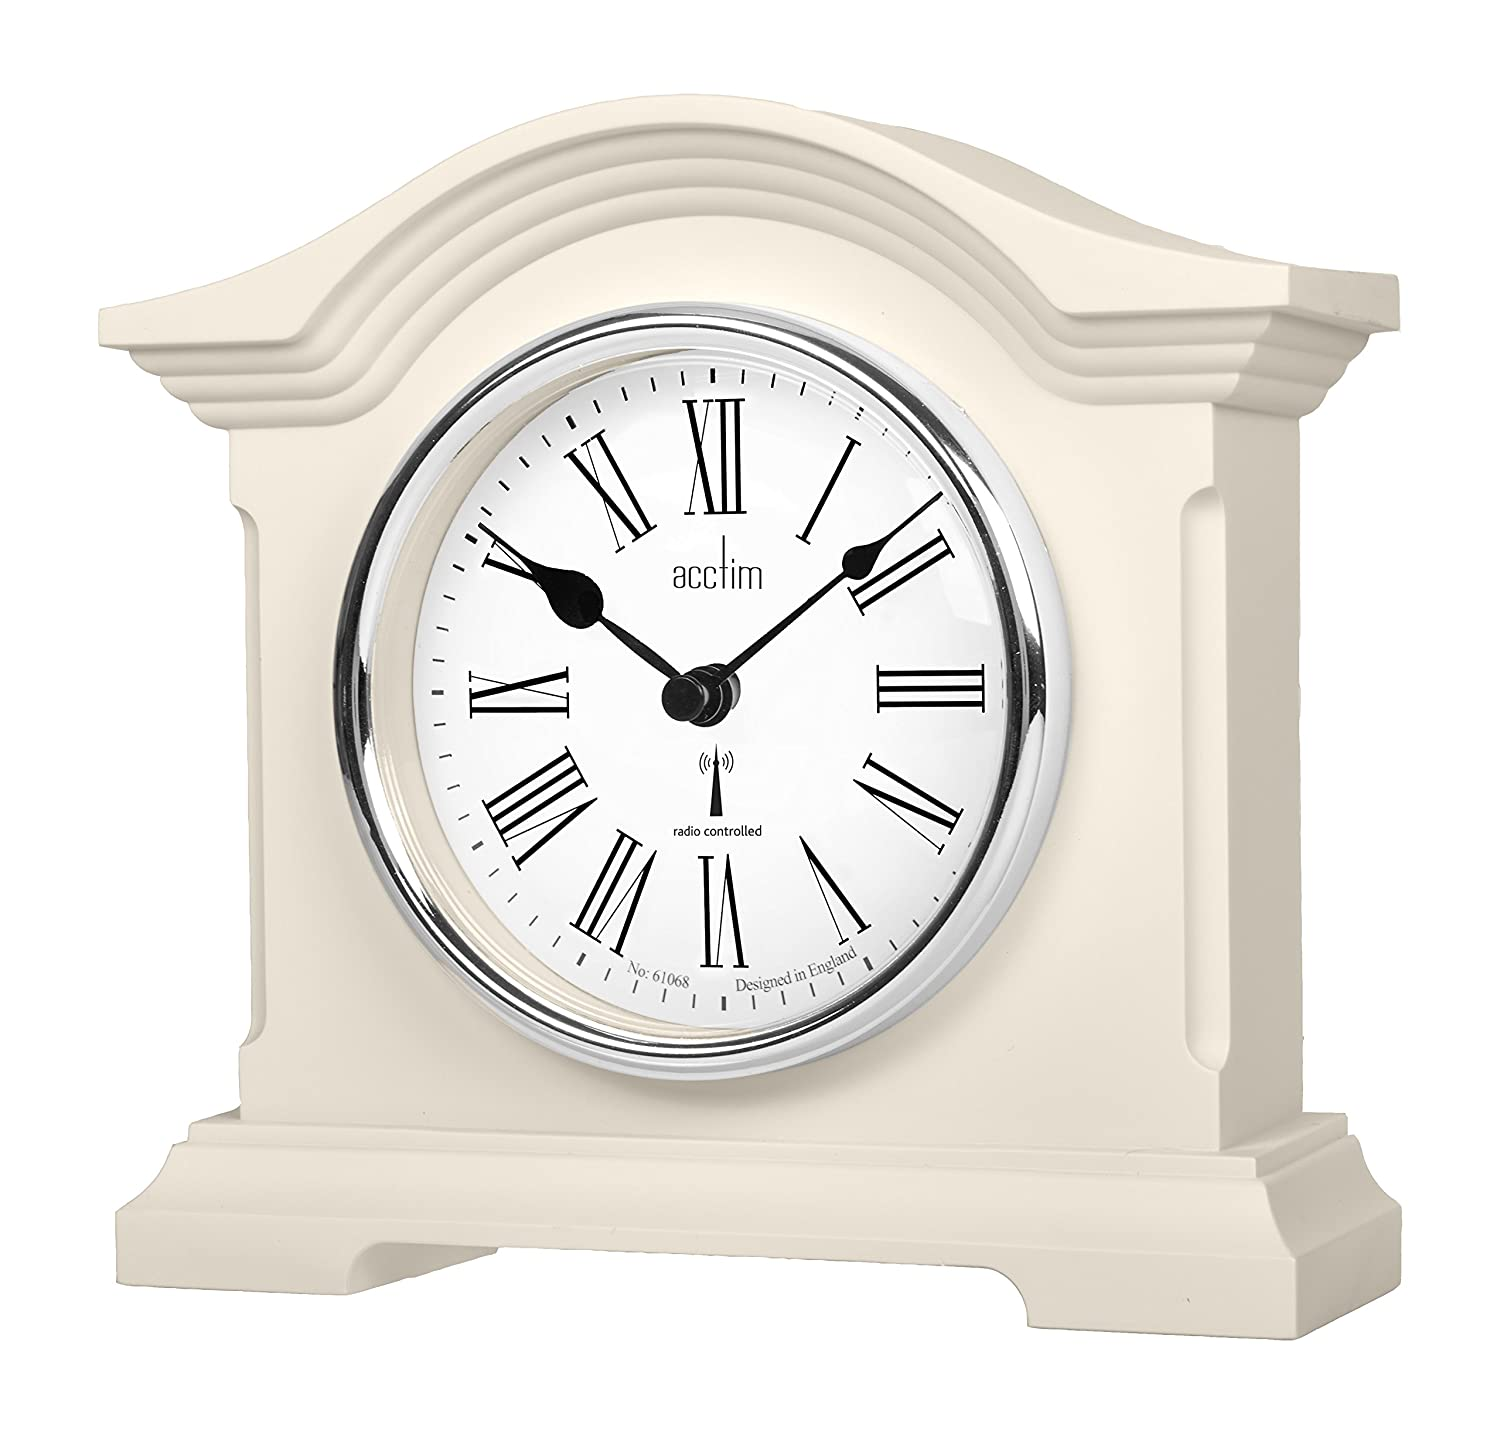 Acctim Cream Coloured Quartz Battery Radio Controlled Mantle Mantel Clock - Chesterfield 77162